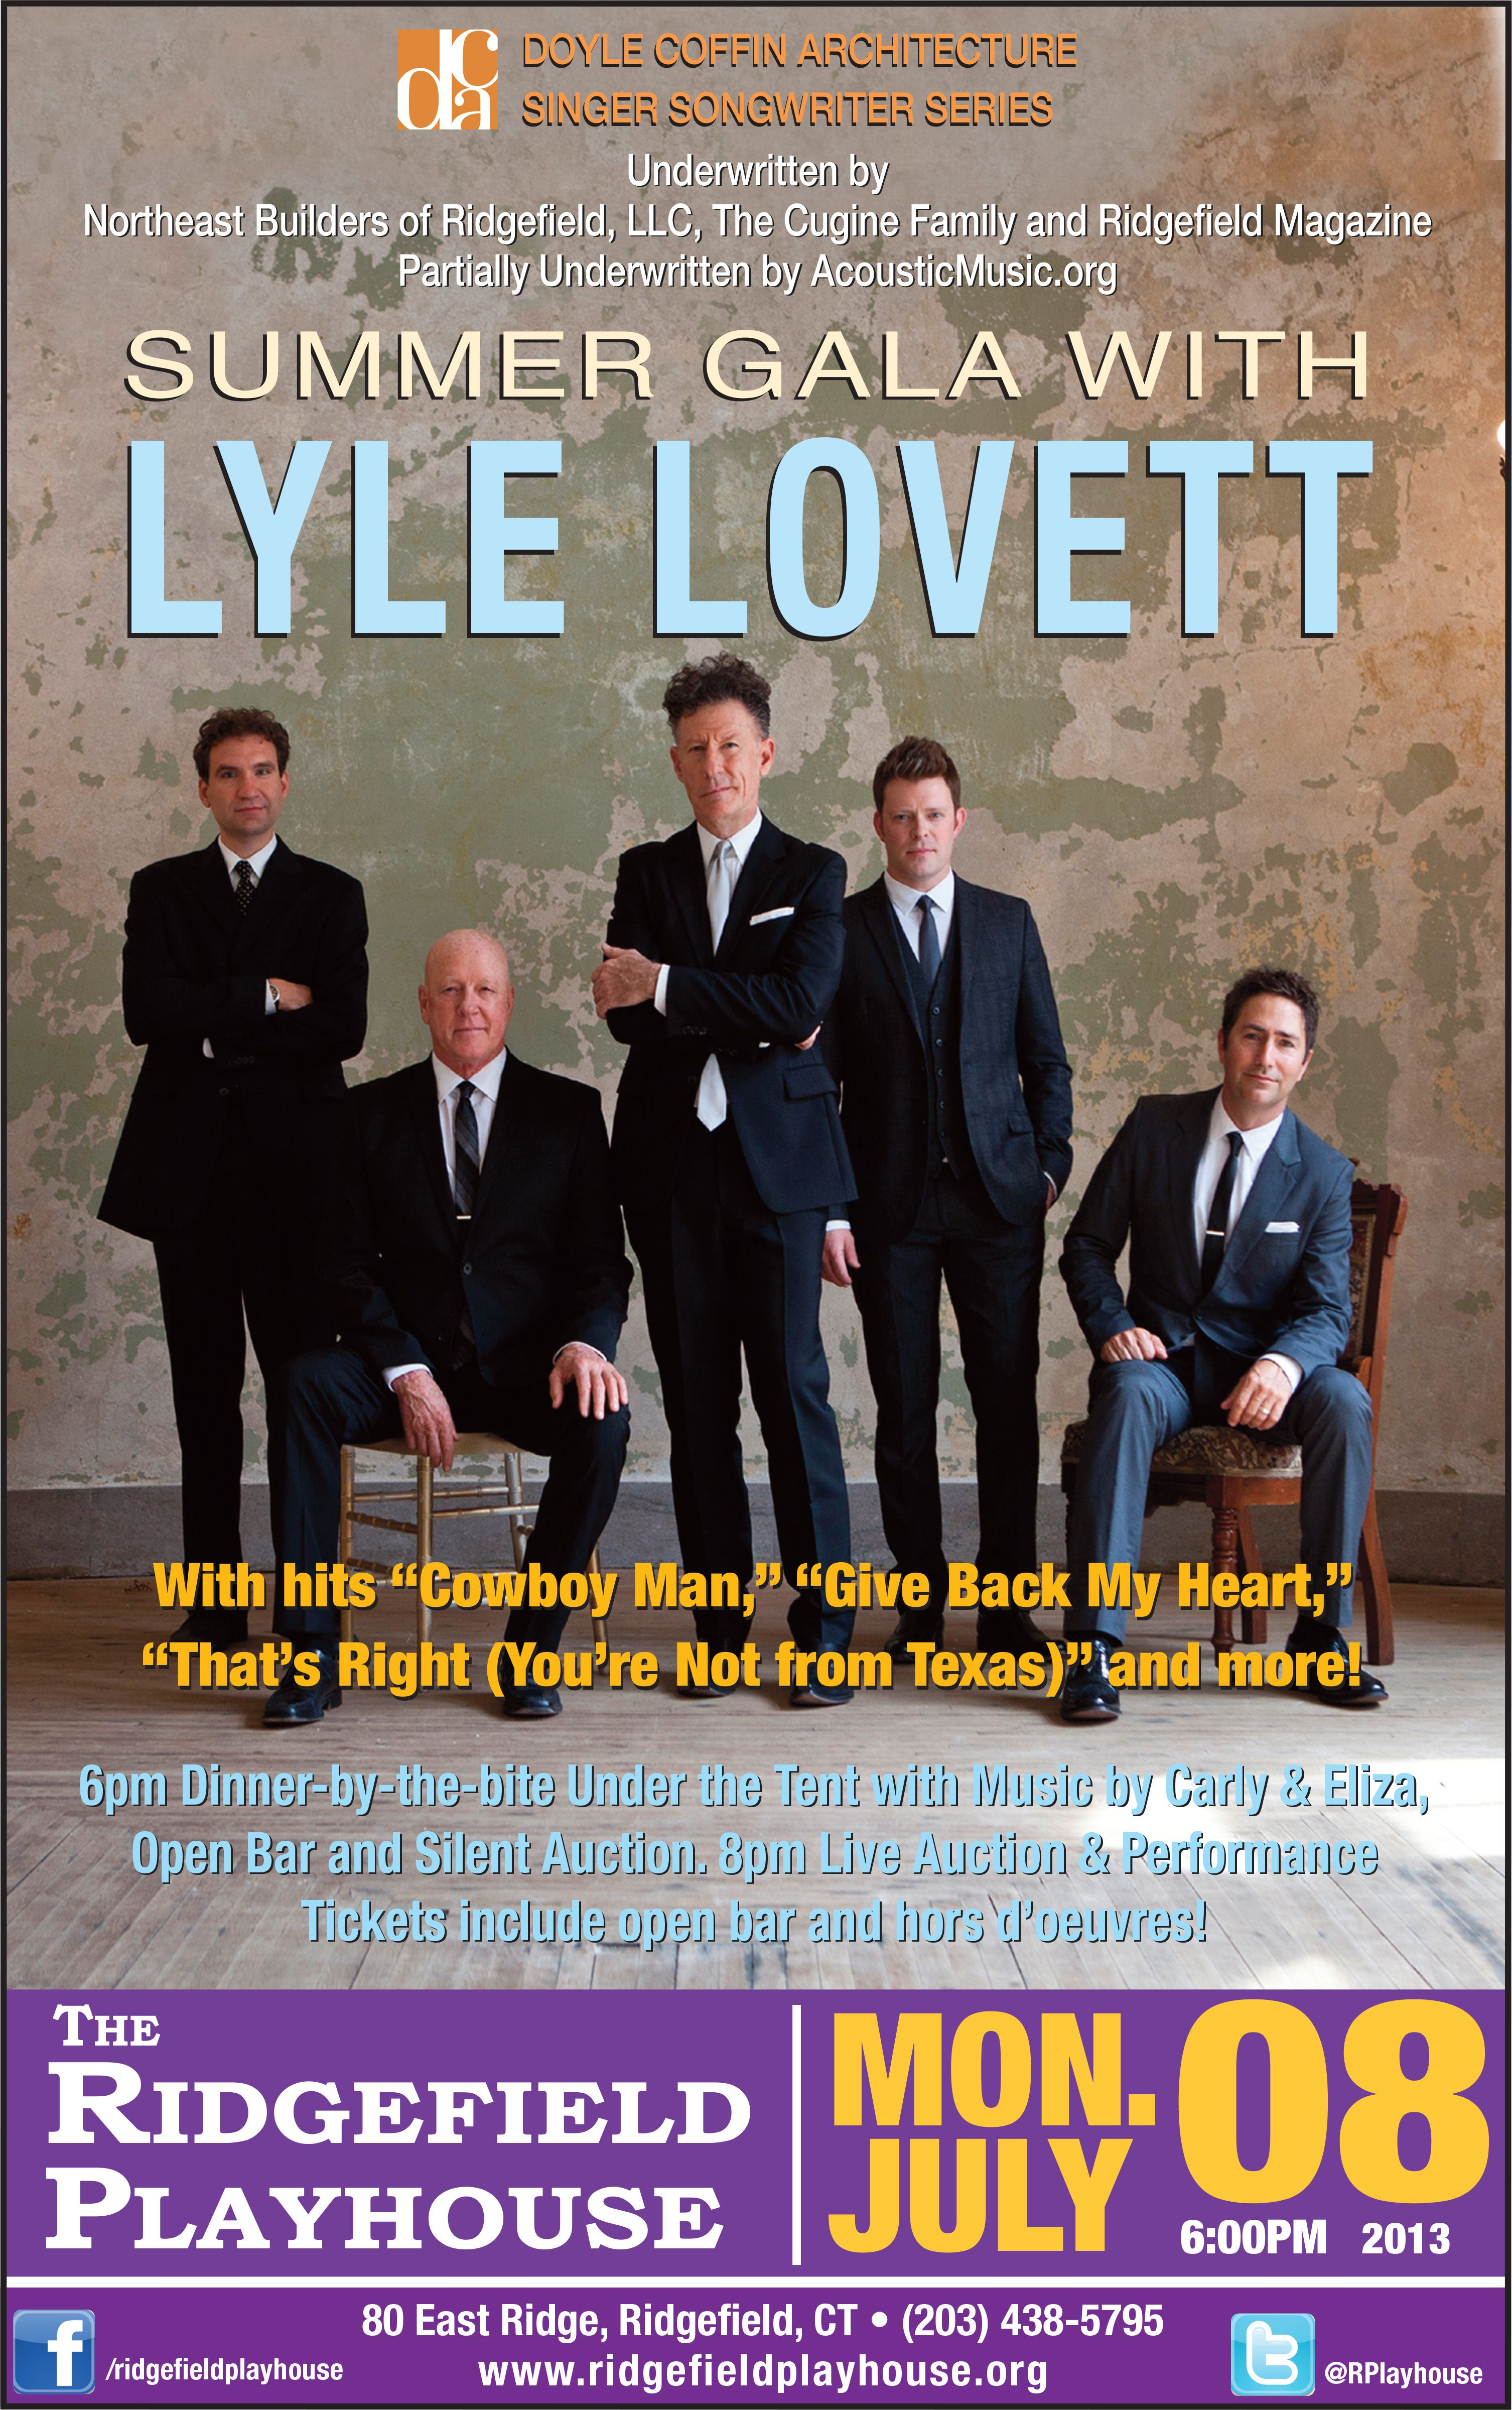 lyle lovett poster just saw this concert but it was in